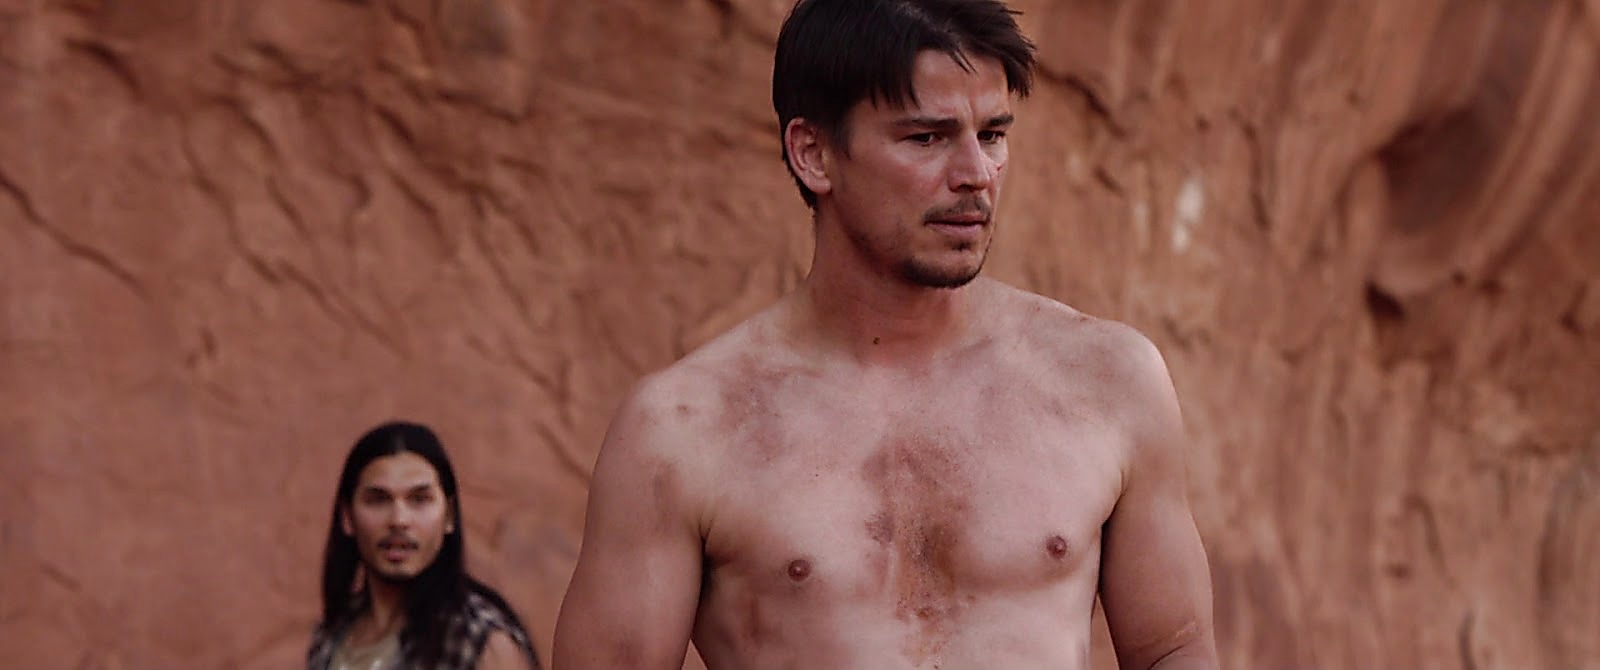 Josh Hartnett Valley Of The Gods 2020 08 01 1596272400 0